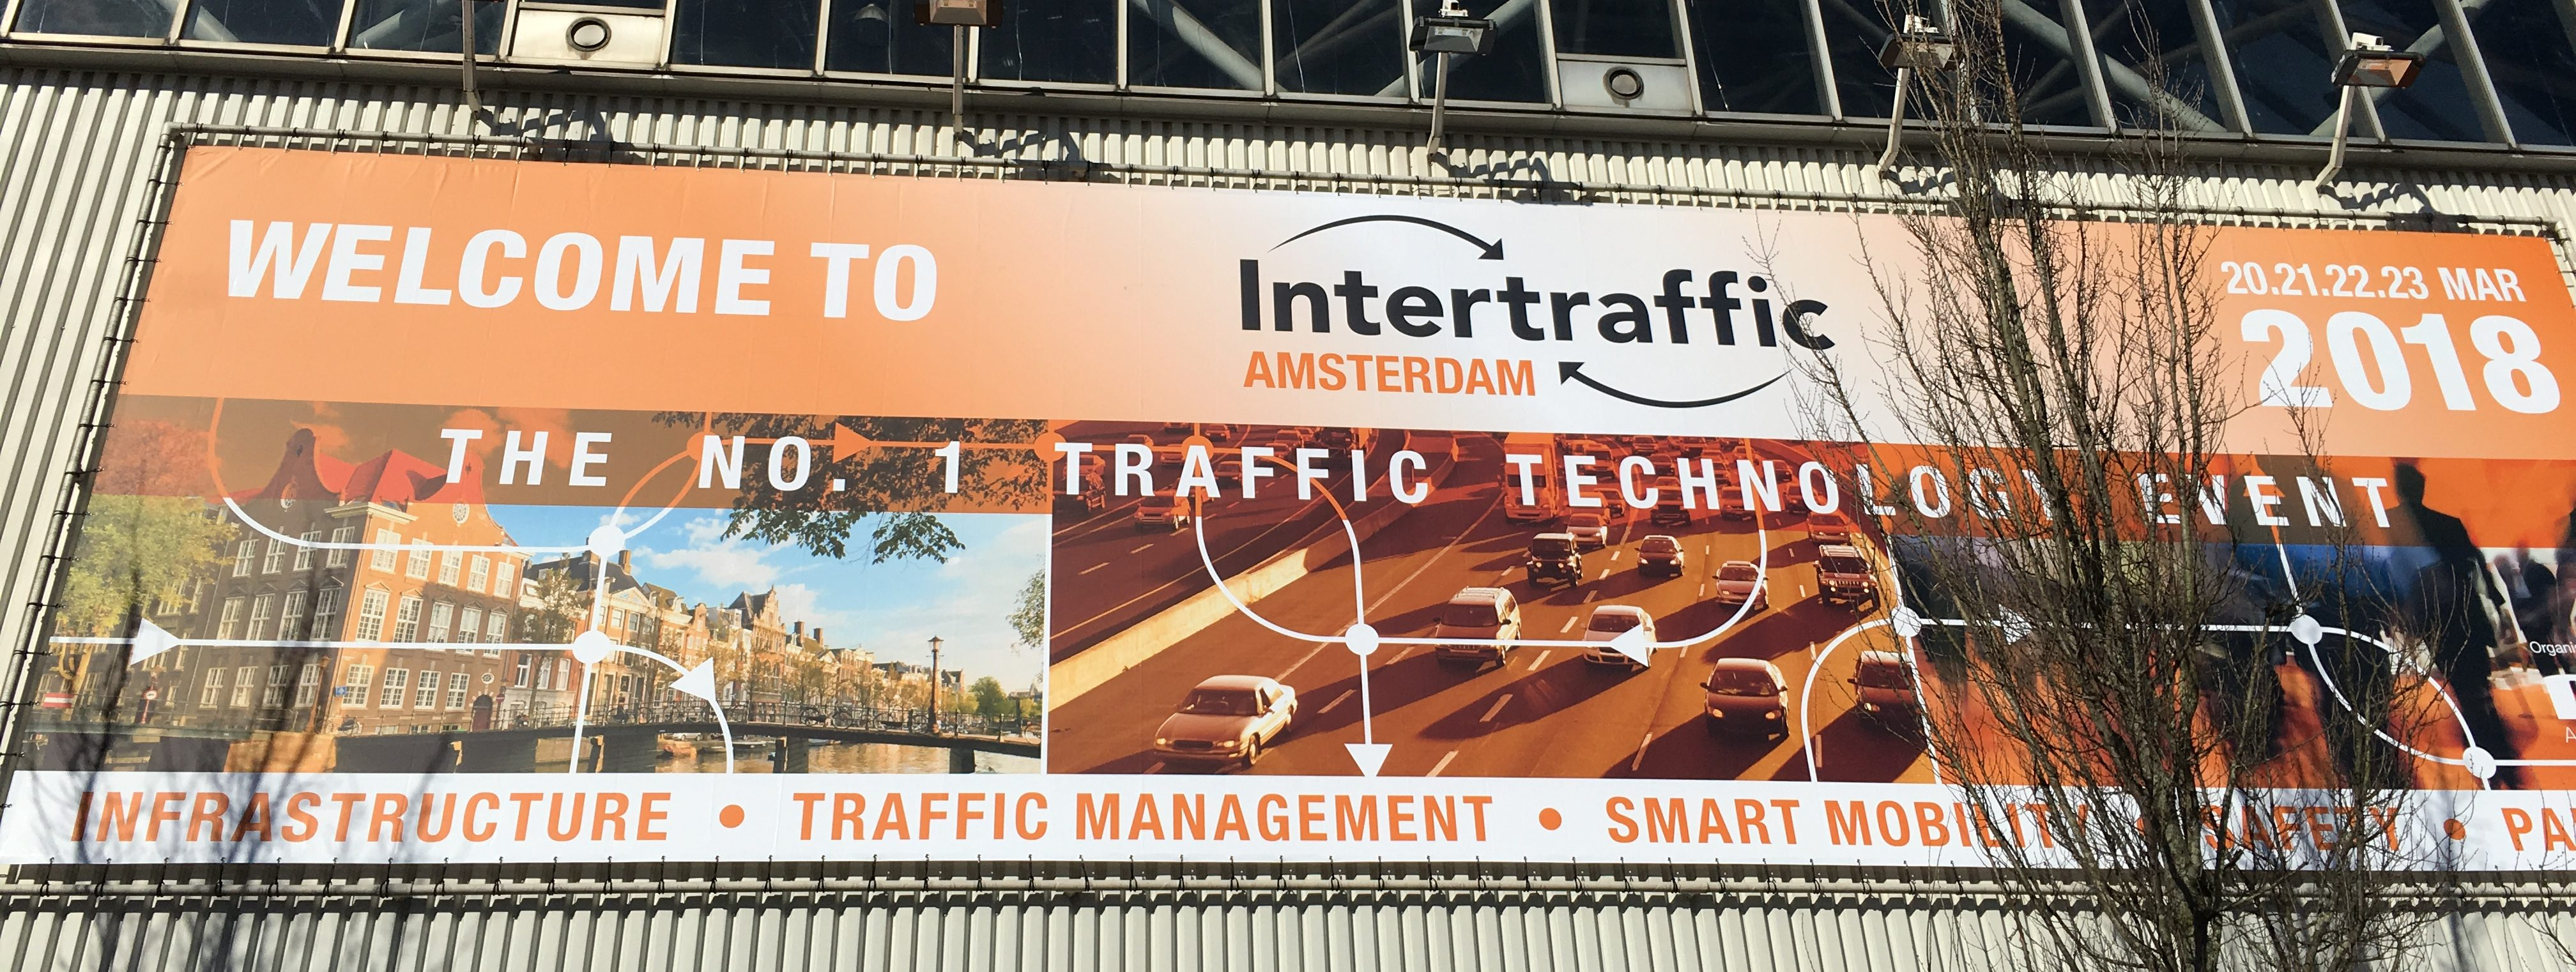 Intertraffic Welcome